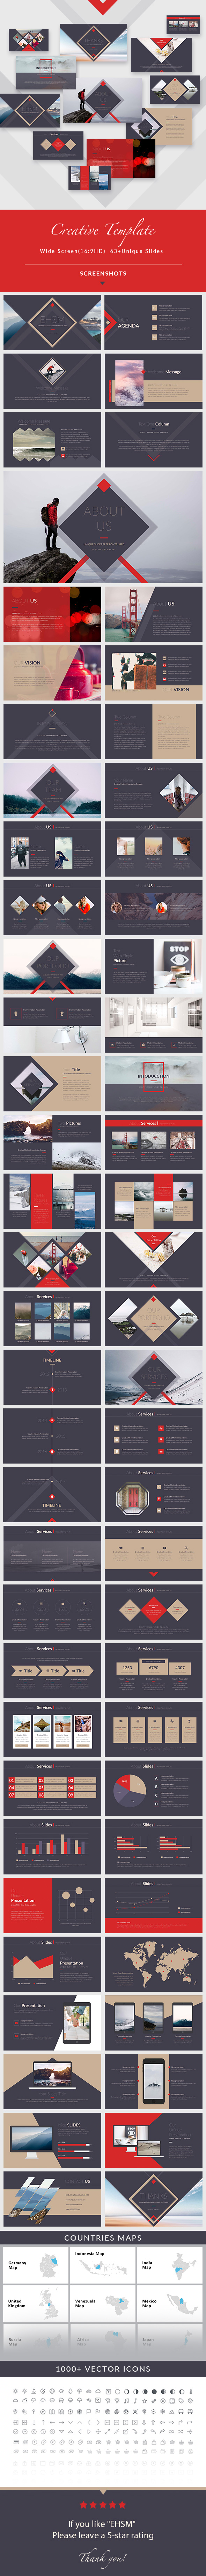 GraphicRiver EHSM Creative Keynote Presentation Template 20648011